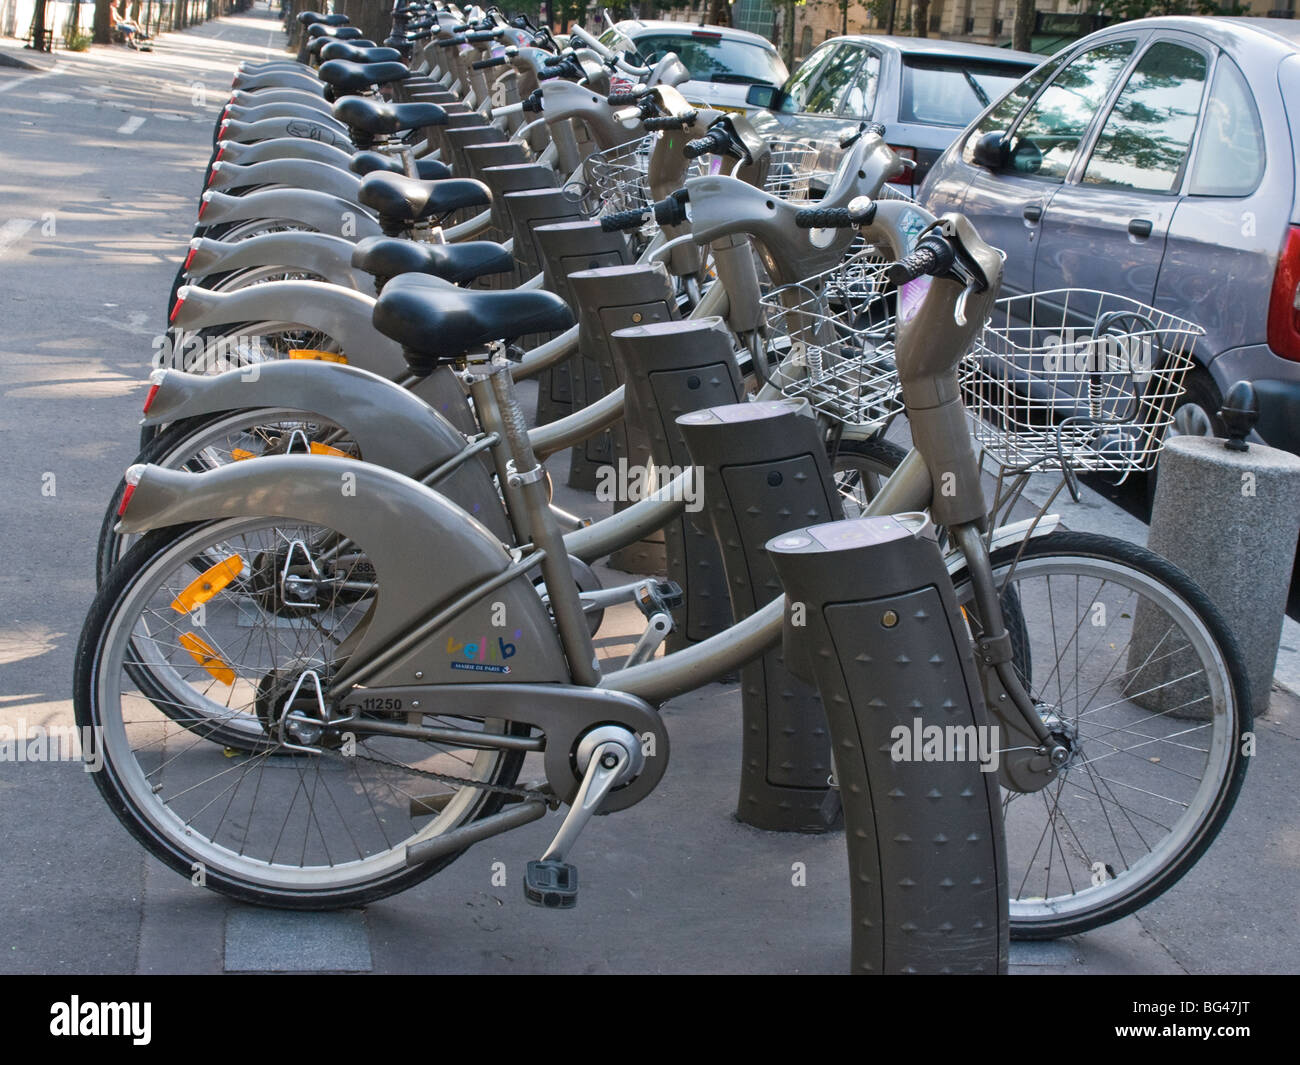 A row of cycles in Paris, France View from the side. Close up - Stock Image